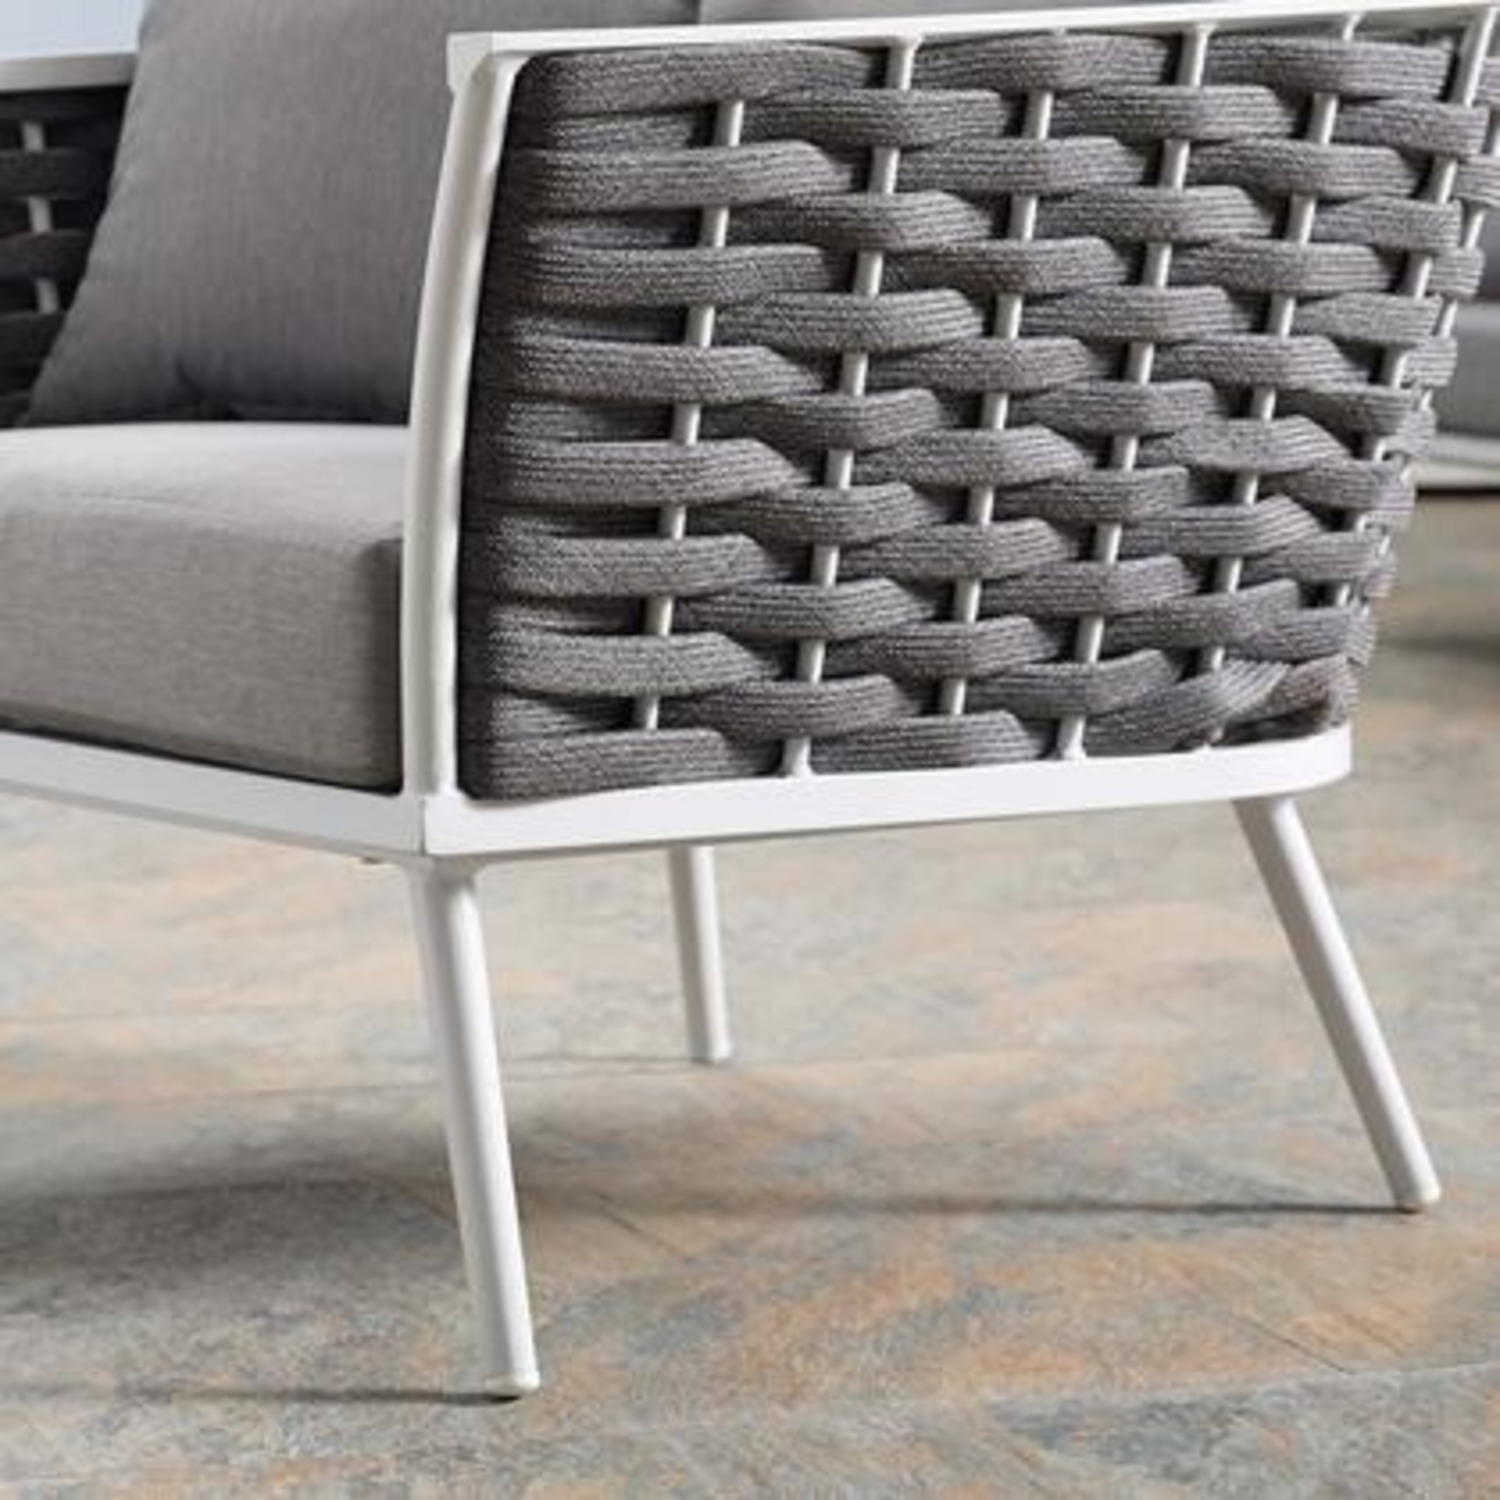 Outdoor Armchair In Gray Fabric W/ Woven Frame - image-4